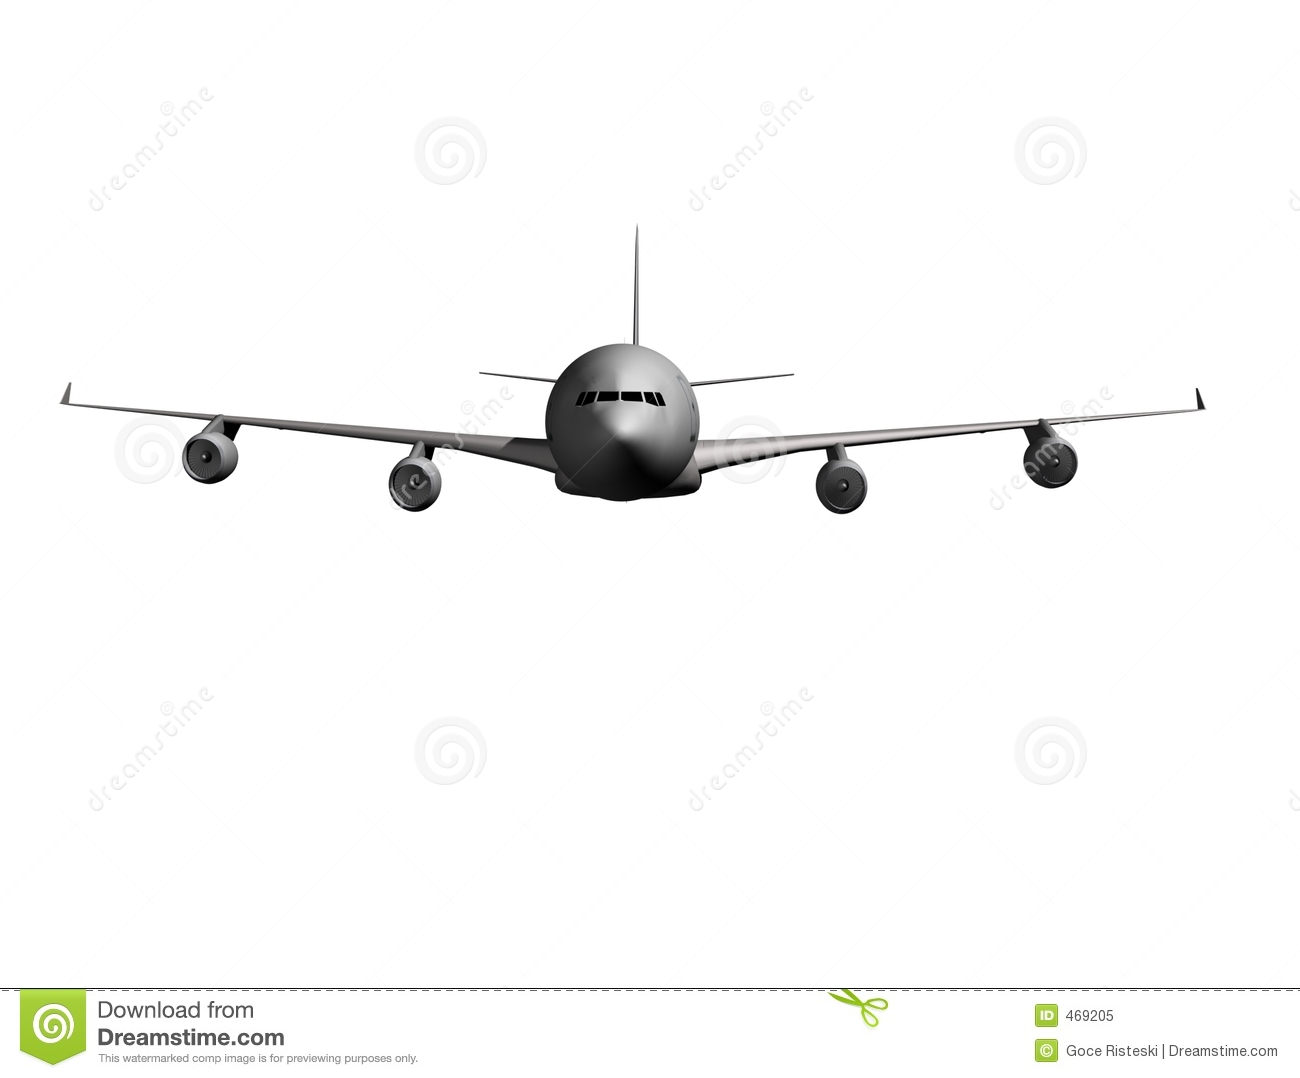 Plane clipart front transparent Airplane Front Royalty Free Stock Photo - Image: 469205 transparent